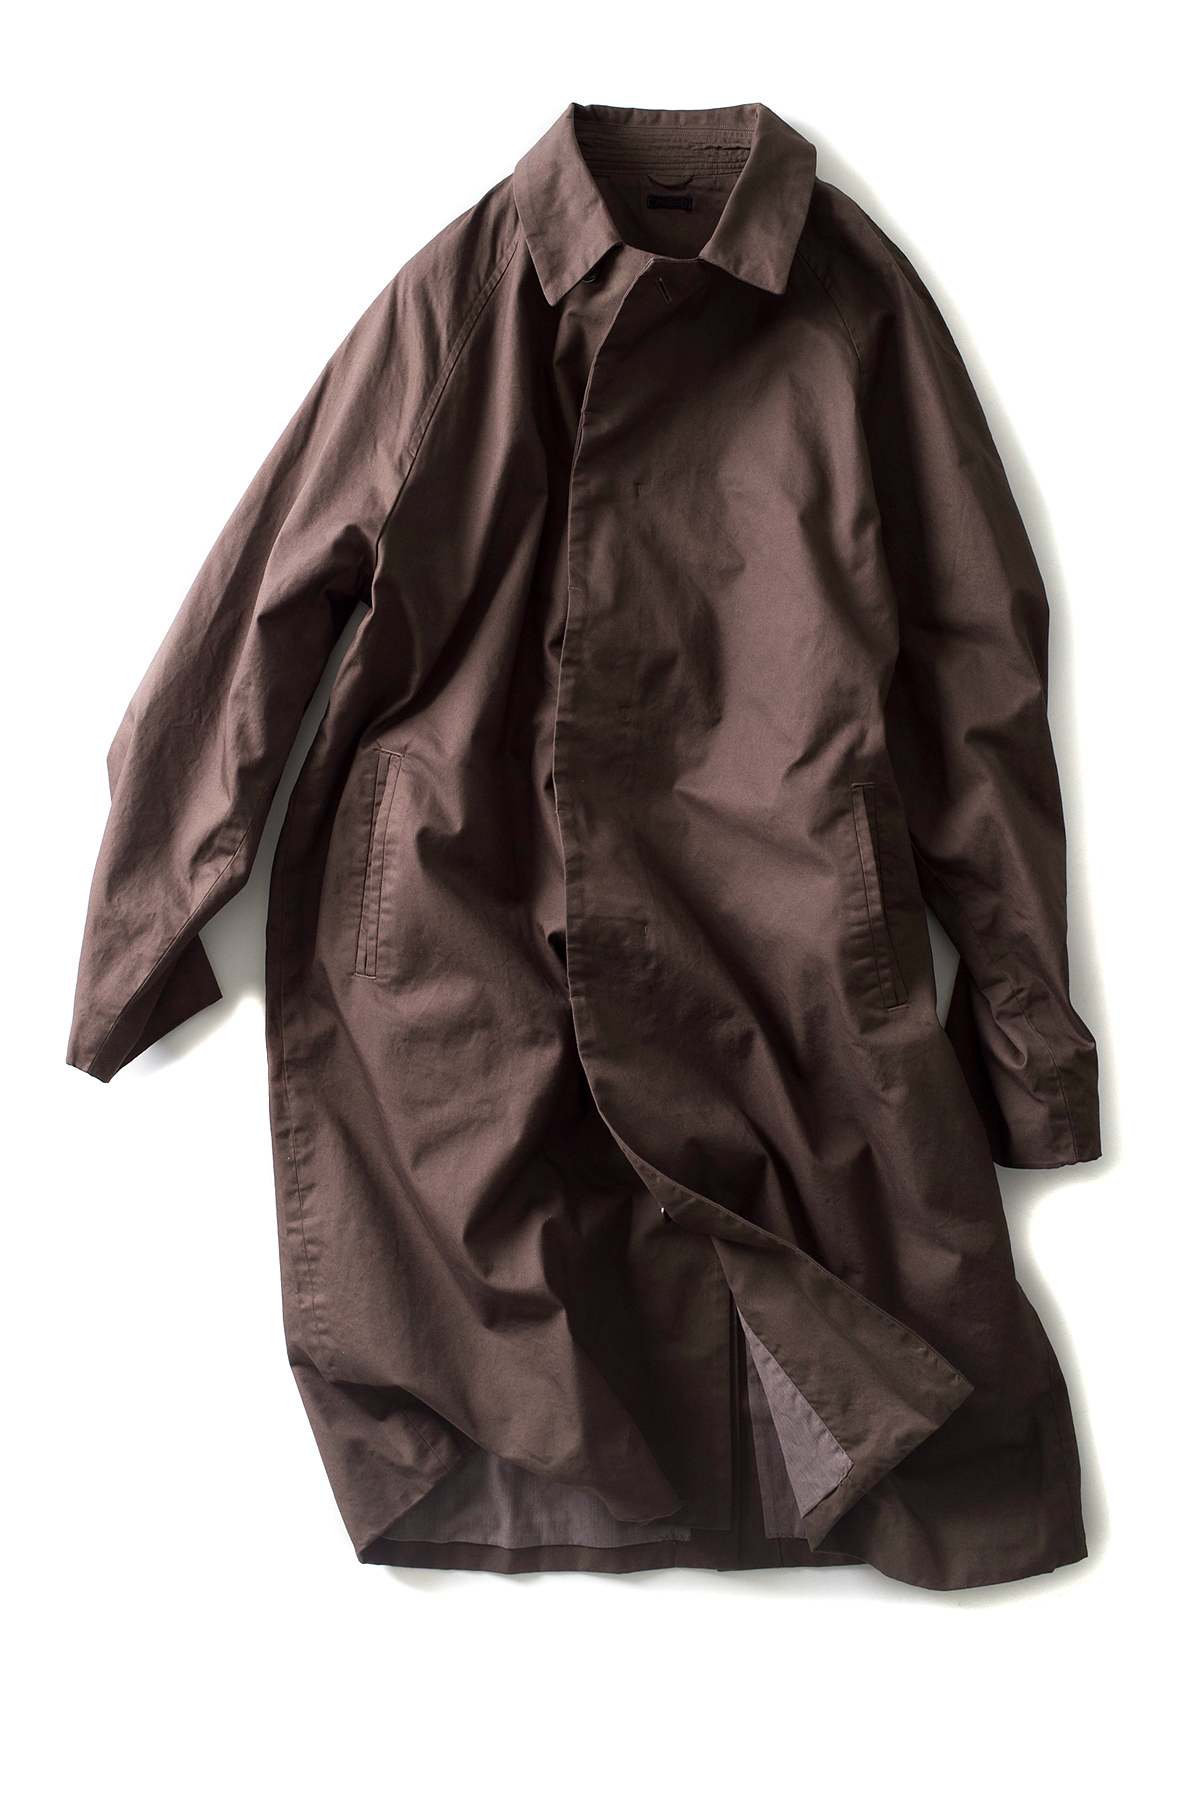 maillot : Cotton Over Coat (Brown)